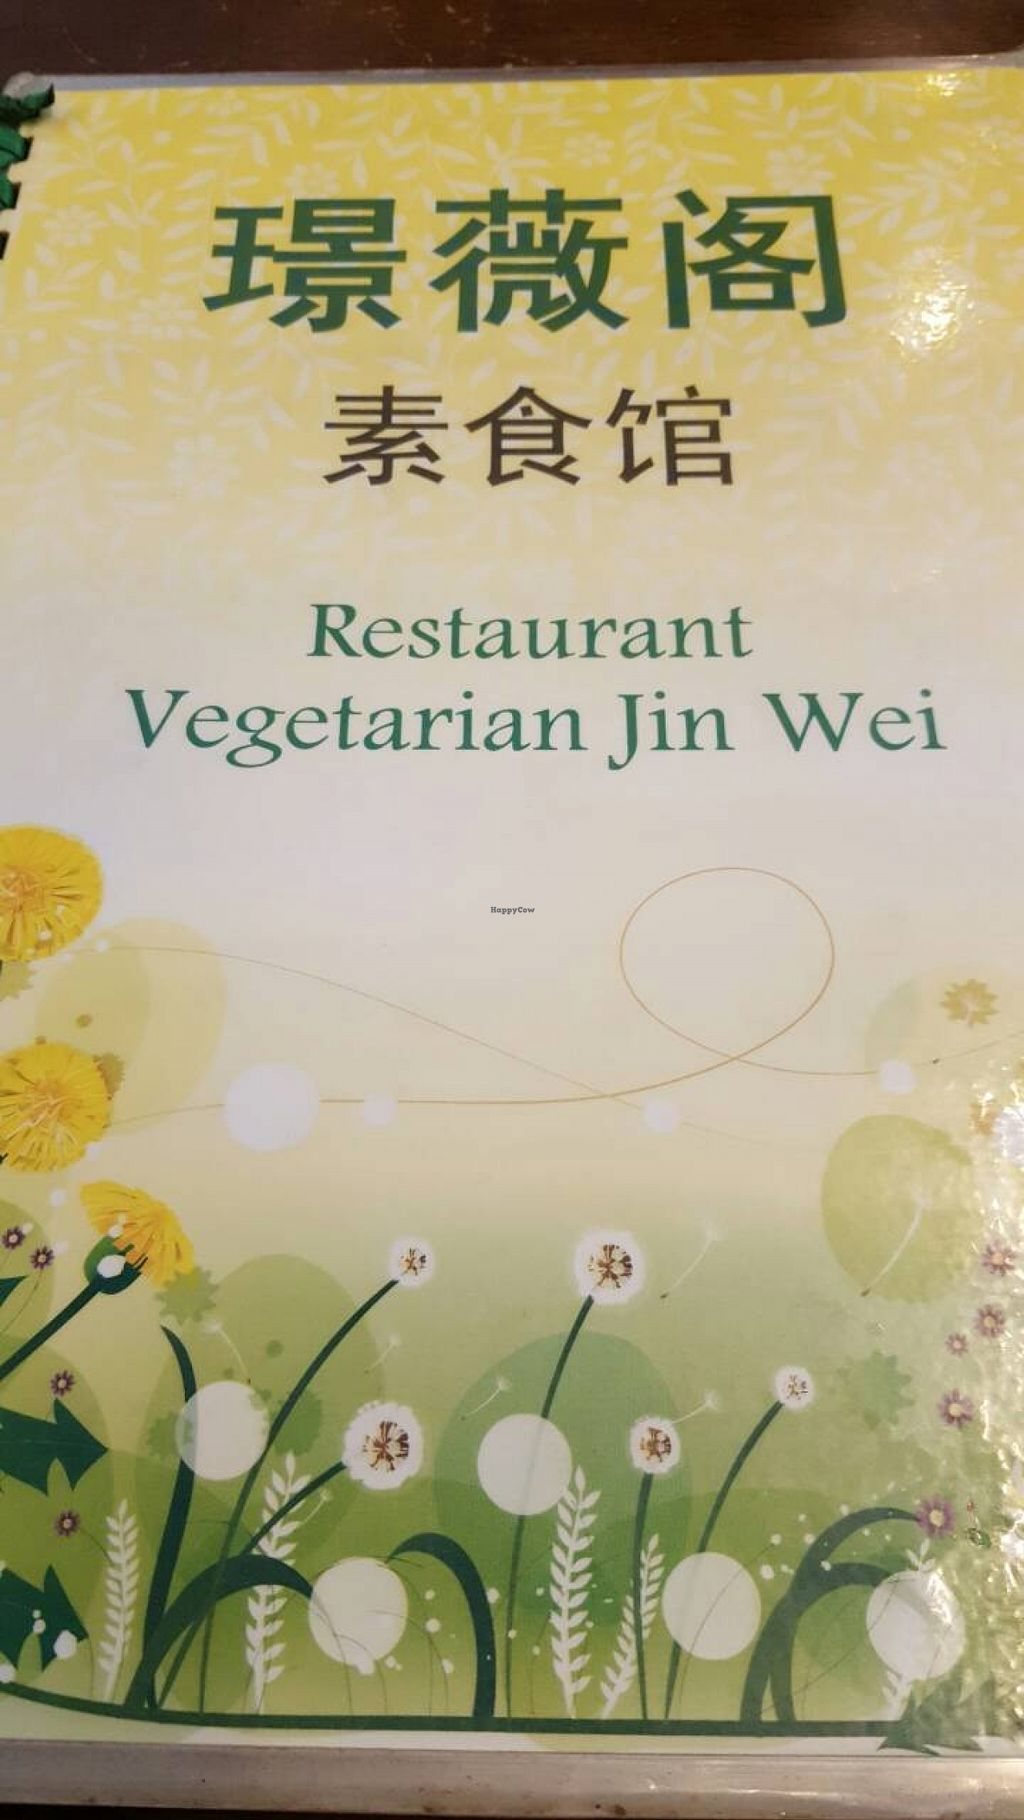 """Photo of Jin Wei   by <a href=""""/members/profile/liaoyuanci"""">liaoyuanci</a> <br/>Jin Wei <br/> March 20, 2016  - <a href='/contact/abuse/image/65827/140754'>Report</a>"""